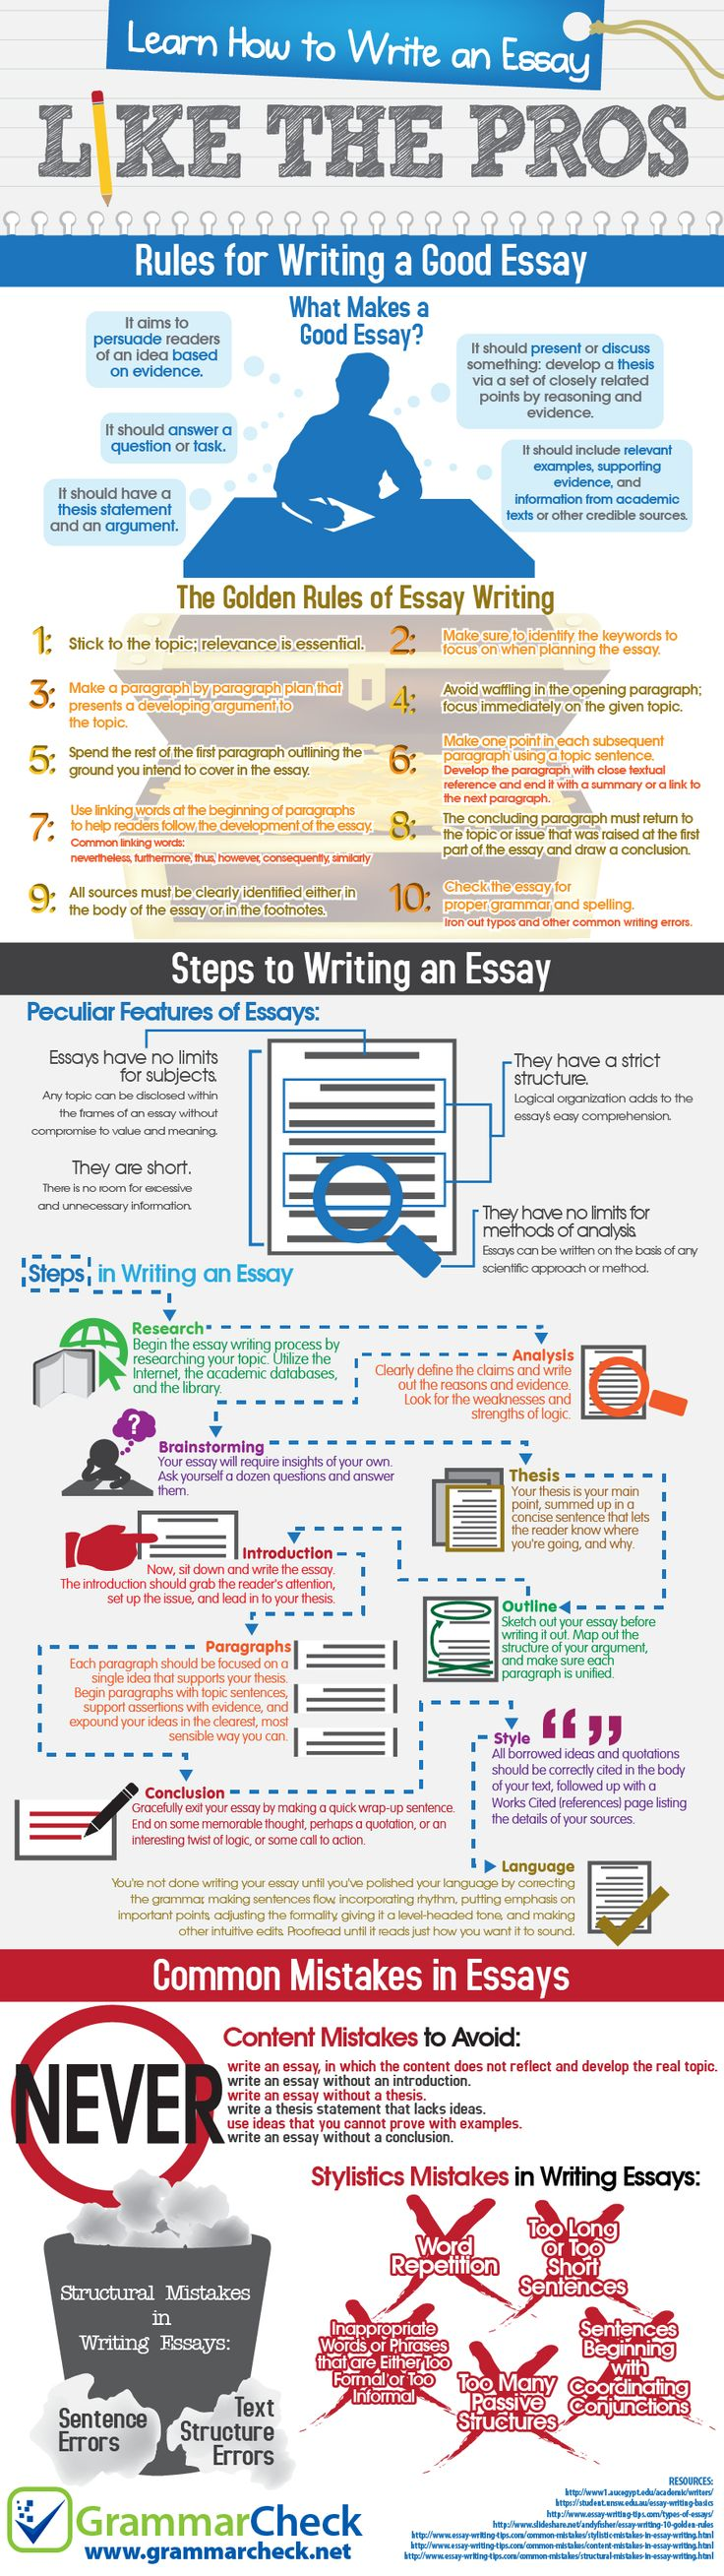 best ideas about academic writing vocabulary how to write an essay like the pros infographic